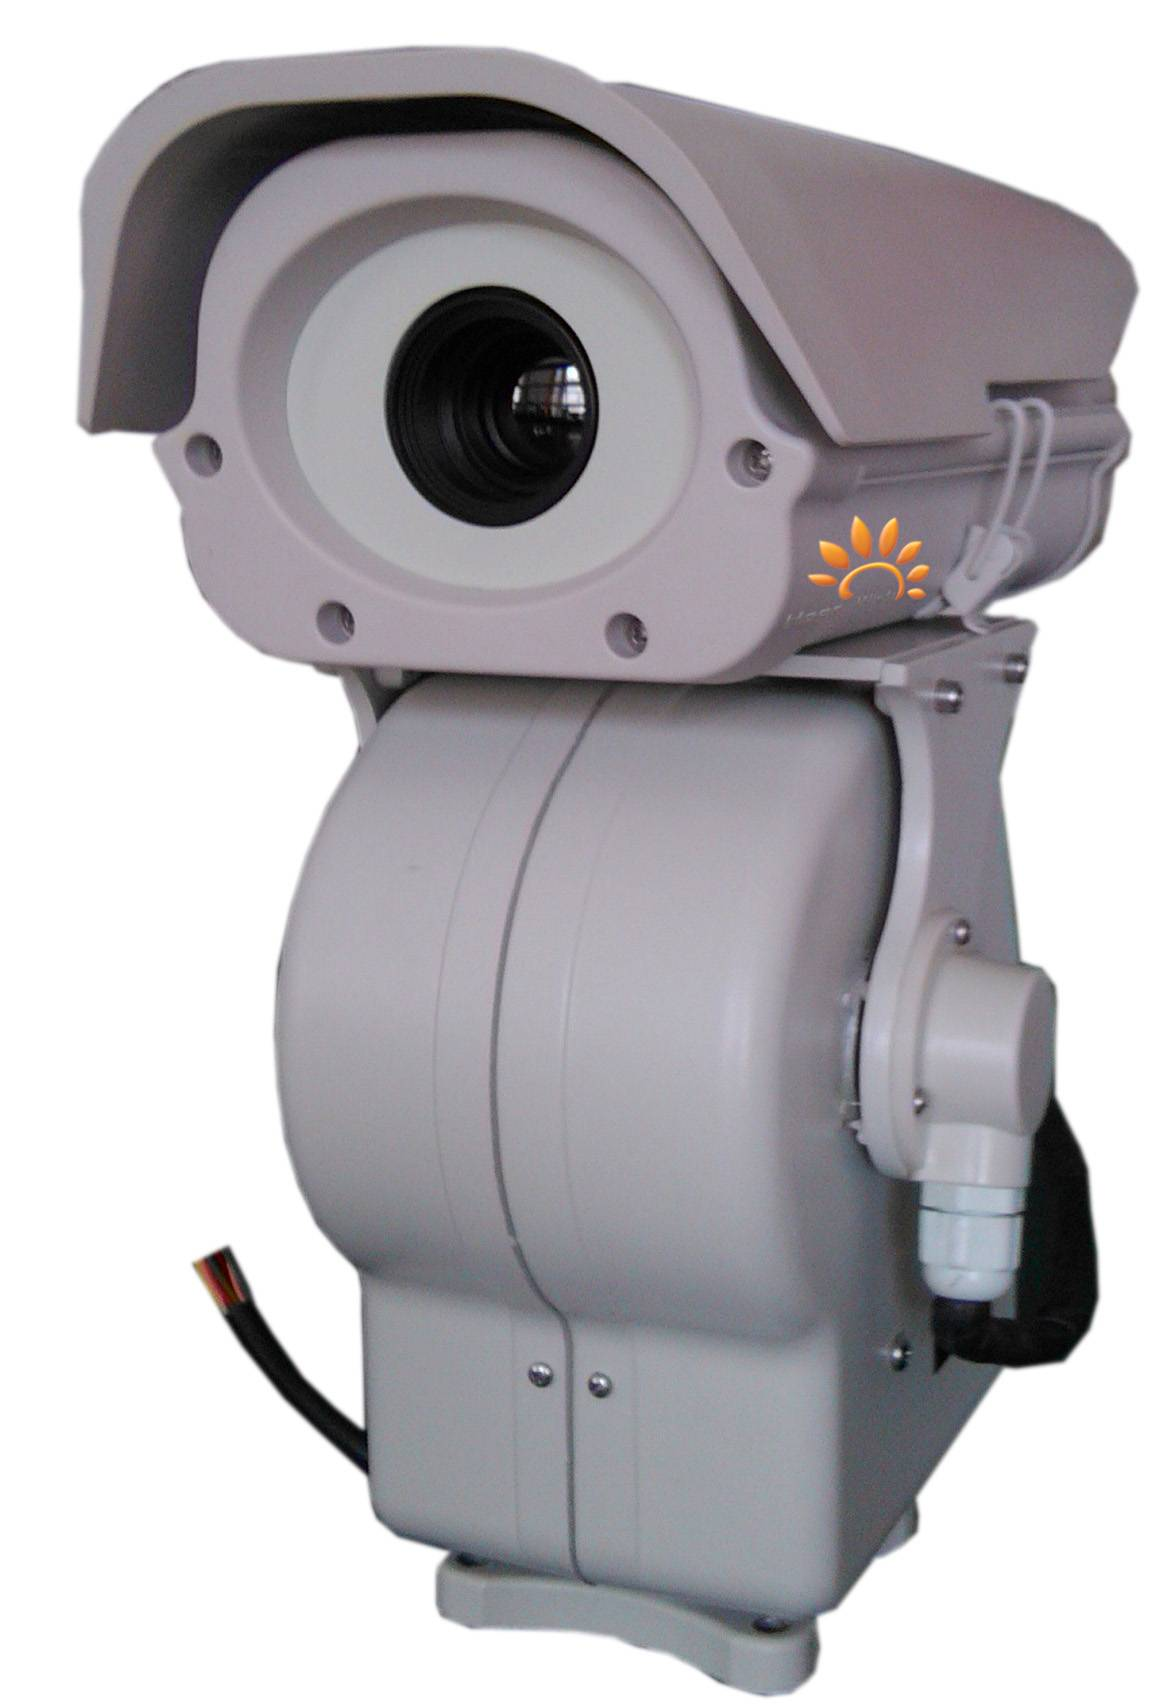 Long-distance zoom thermal cam